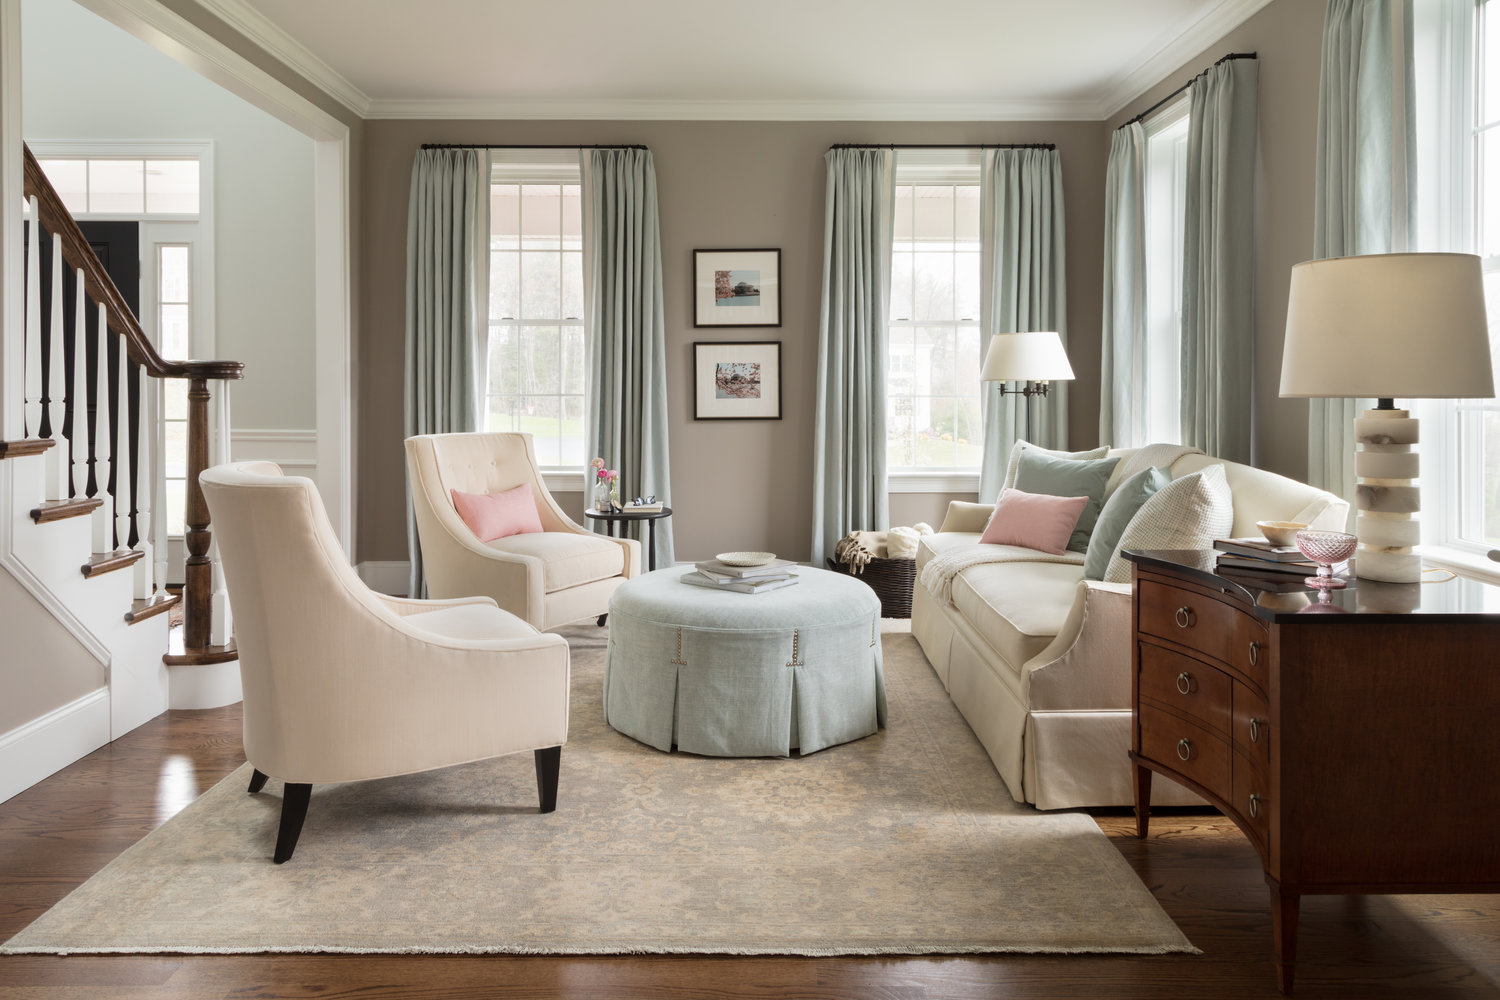 Bees-Knees-Interior-Design-Massachusetts-Living-Space.jpg